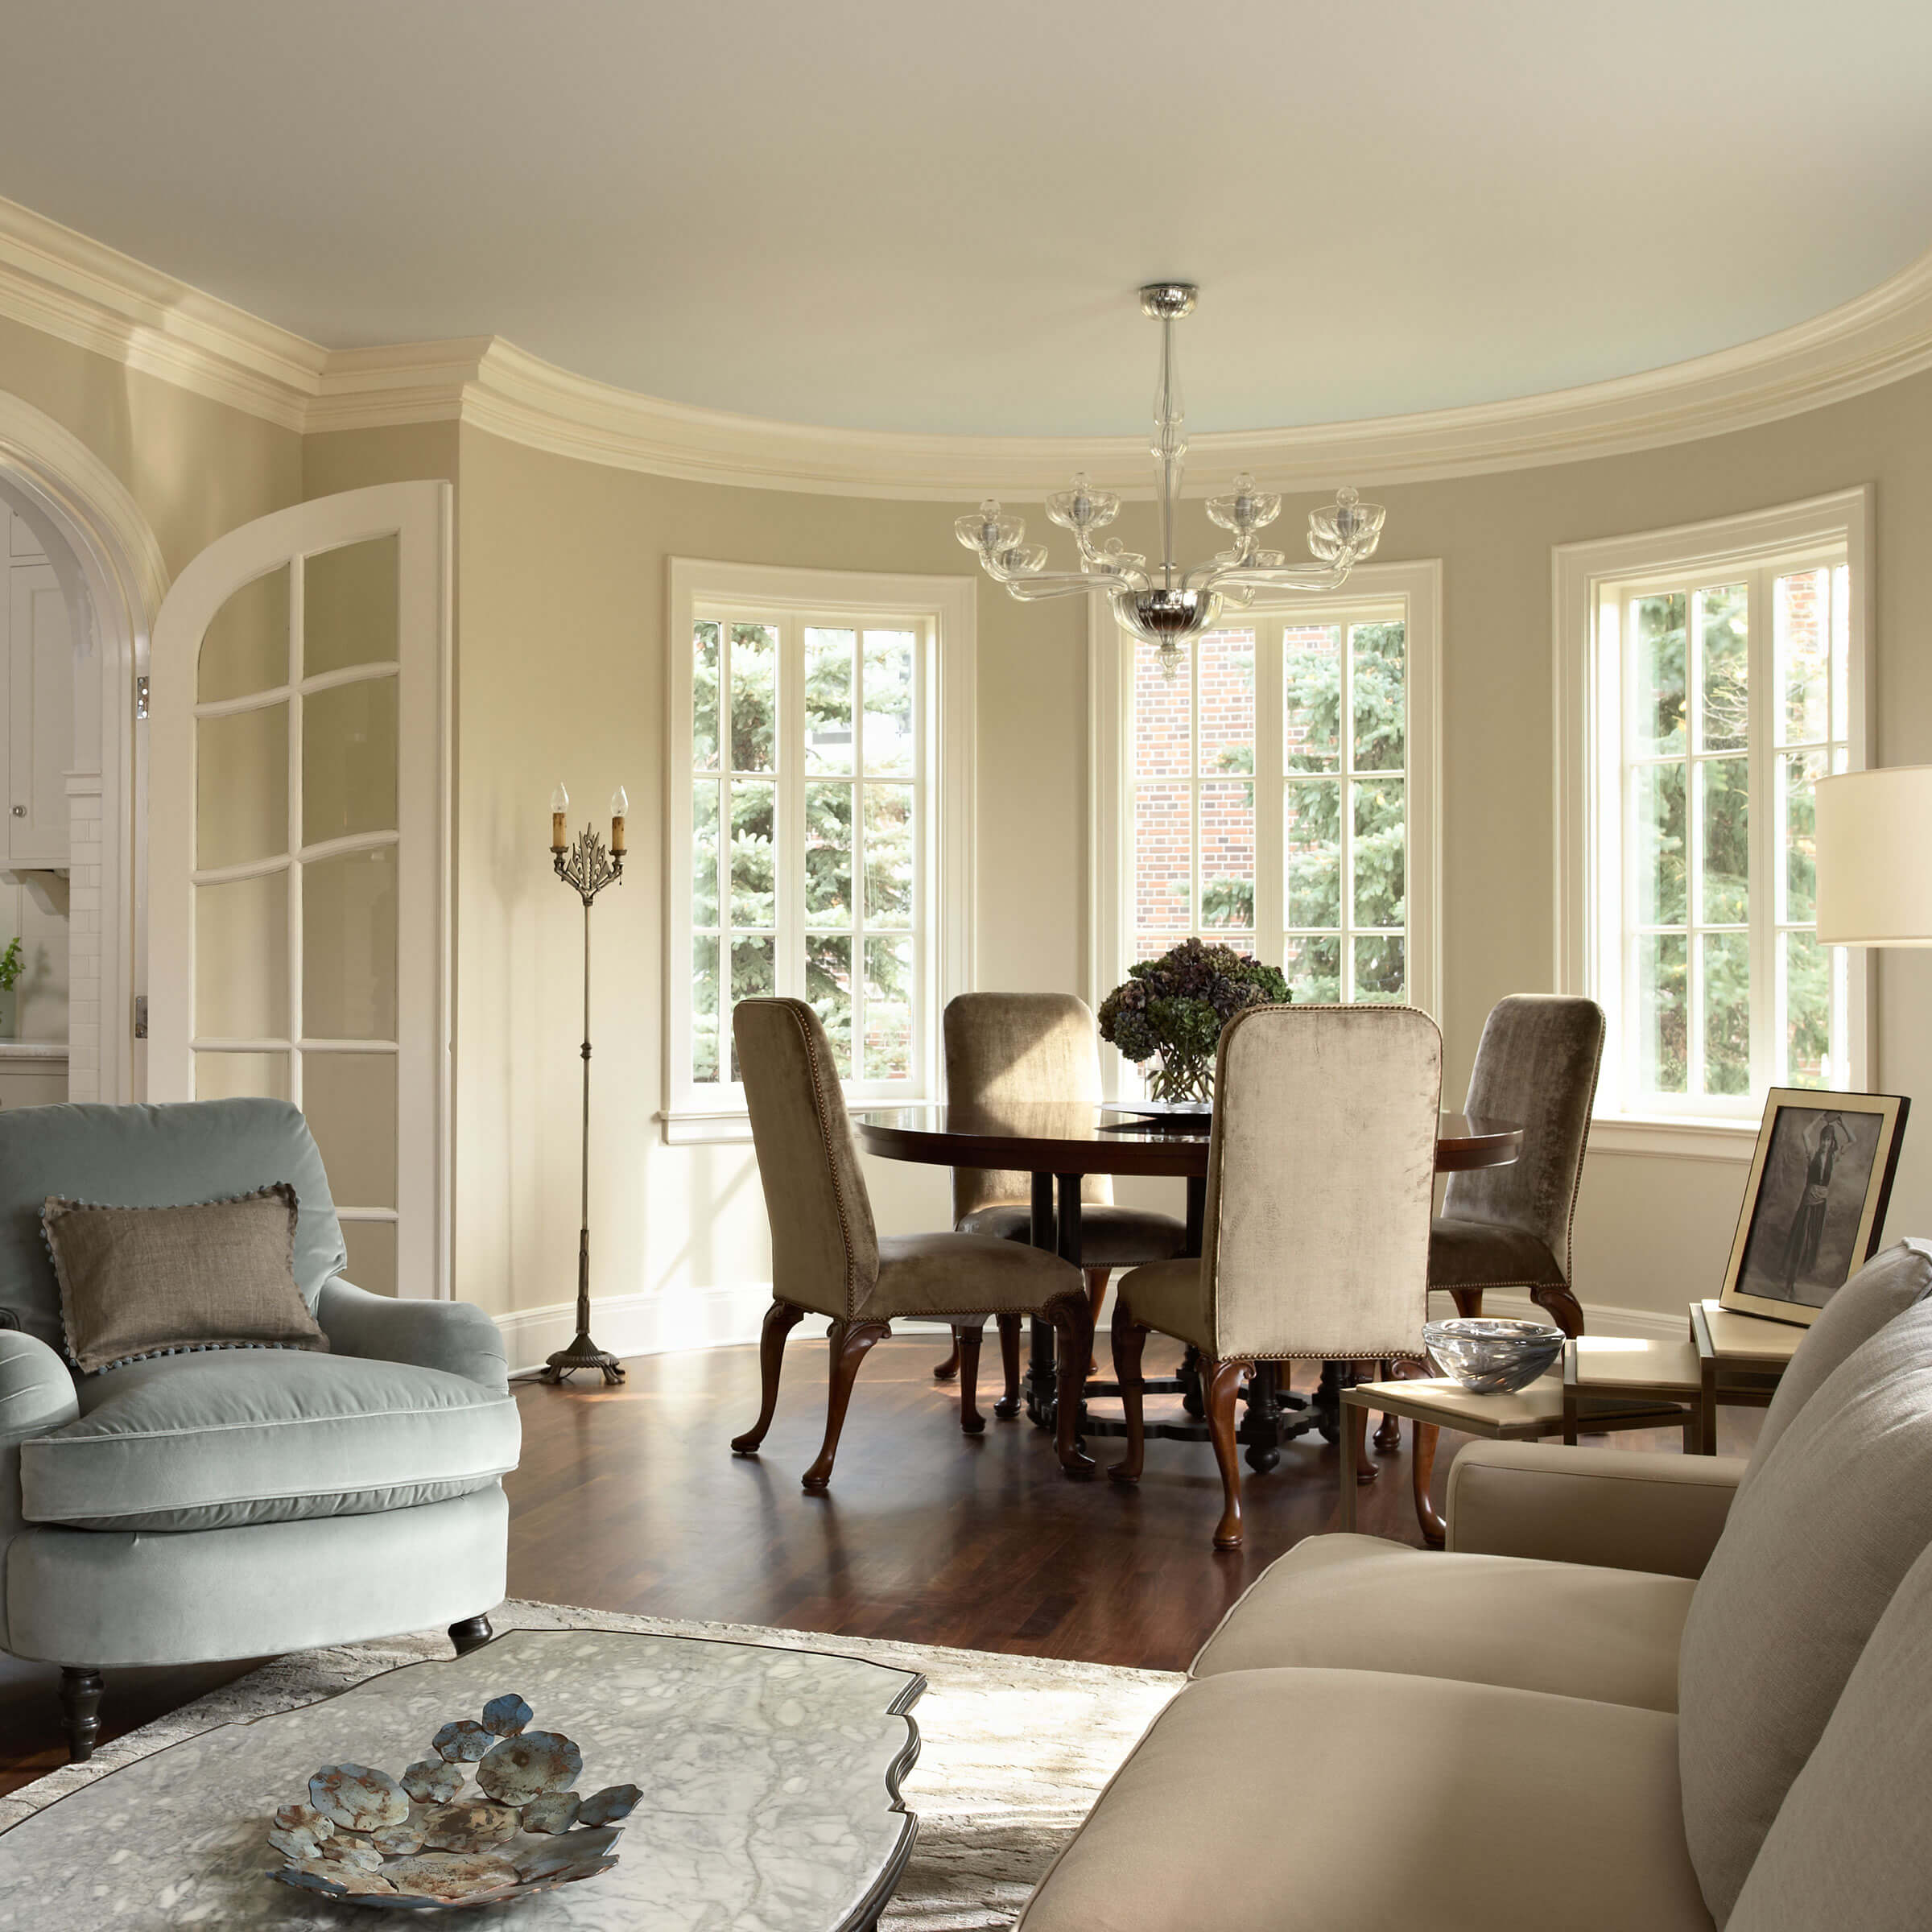 Living Room With Ultimate Windows